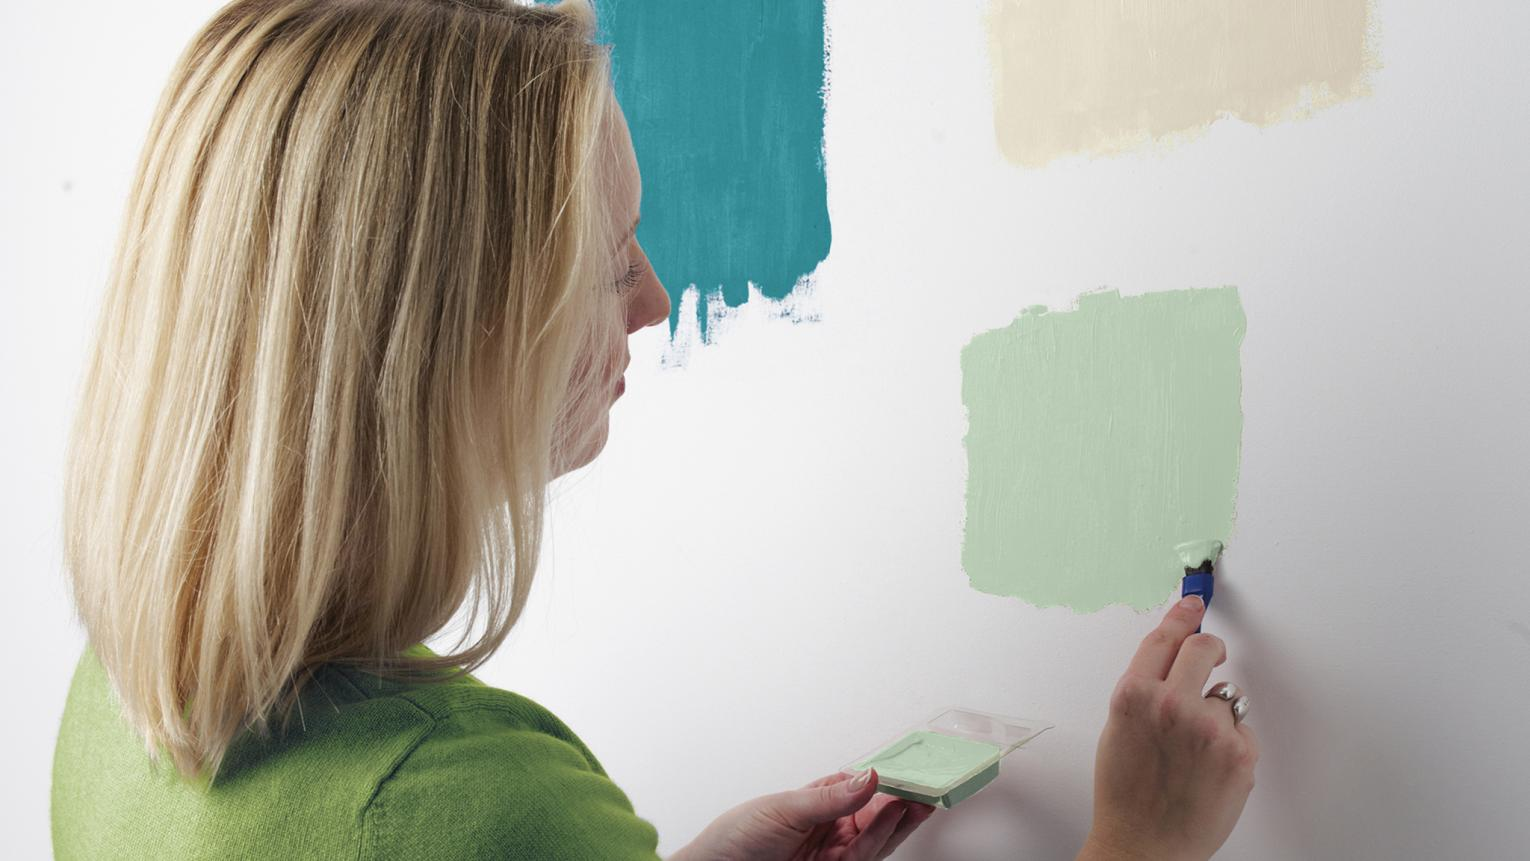 A little nervous about choosing the right paint colours? With our expert tips, you'll learn to trust your colour instincts.